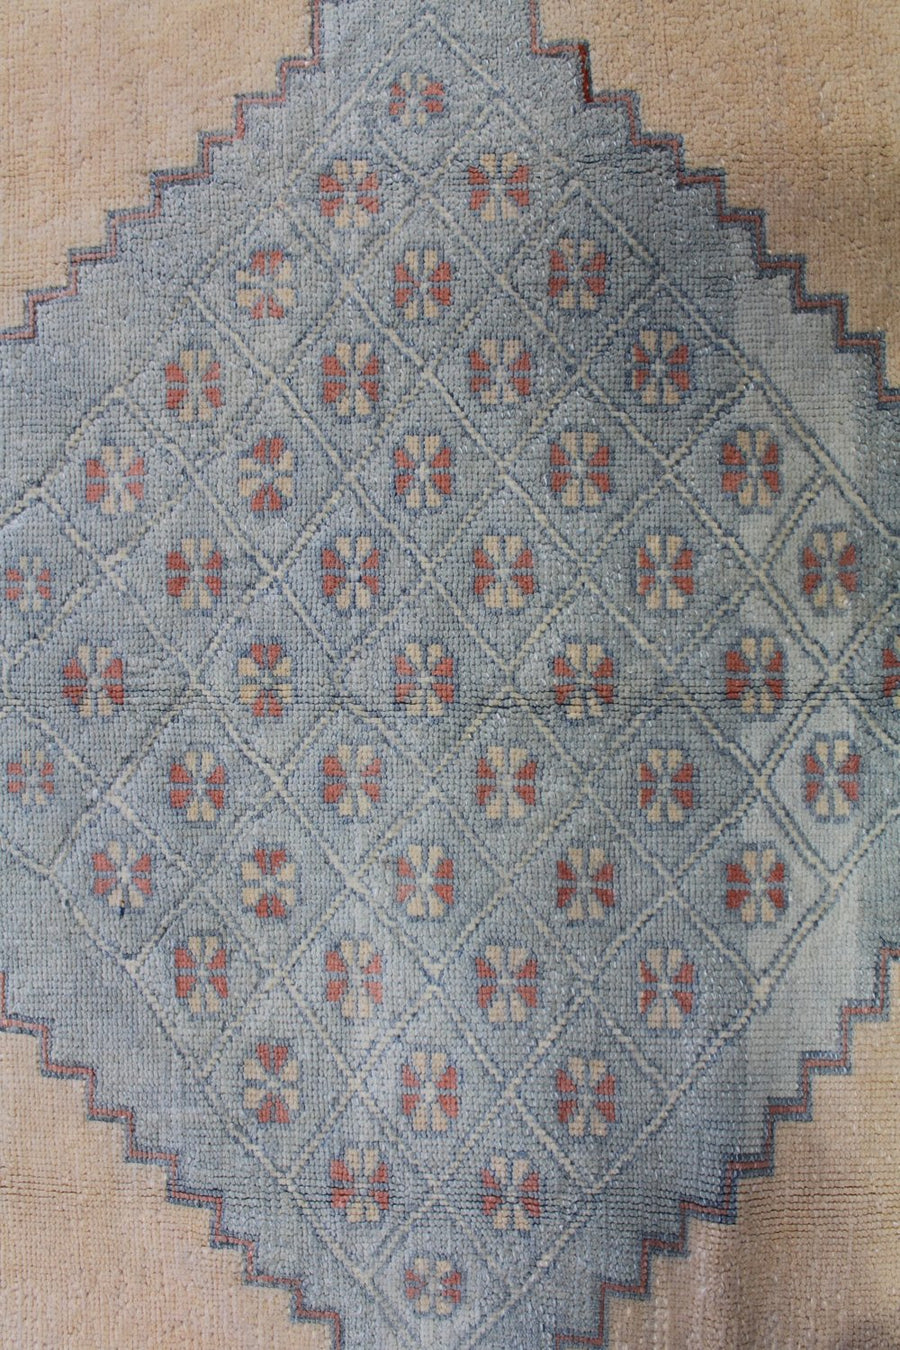 SULTANHAN HANDKNOTTED RUG, J58761